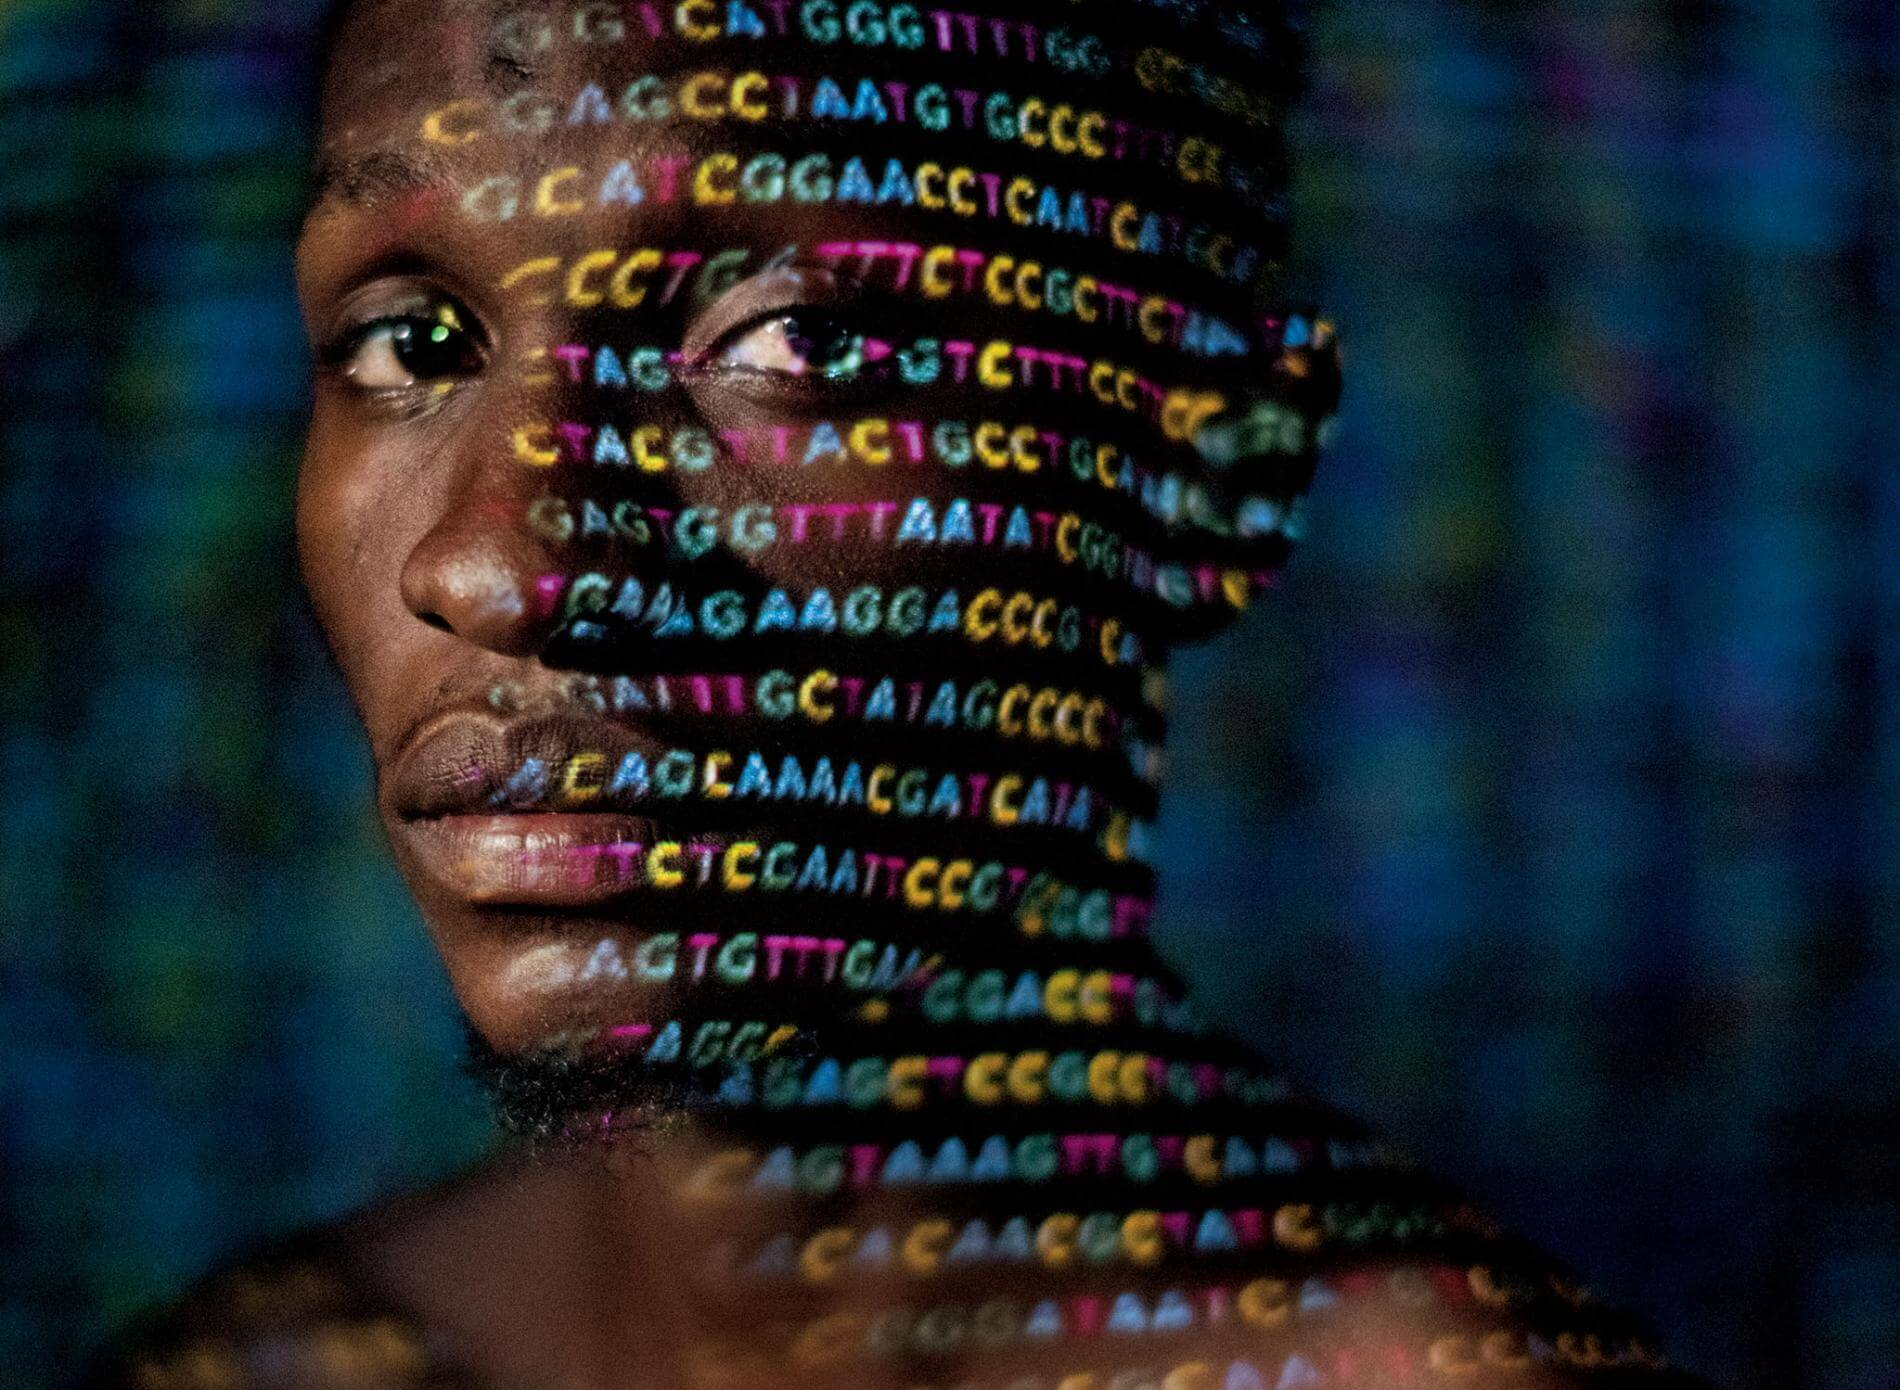 genetics code projected face african man crop adapt